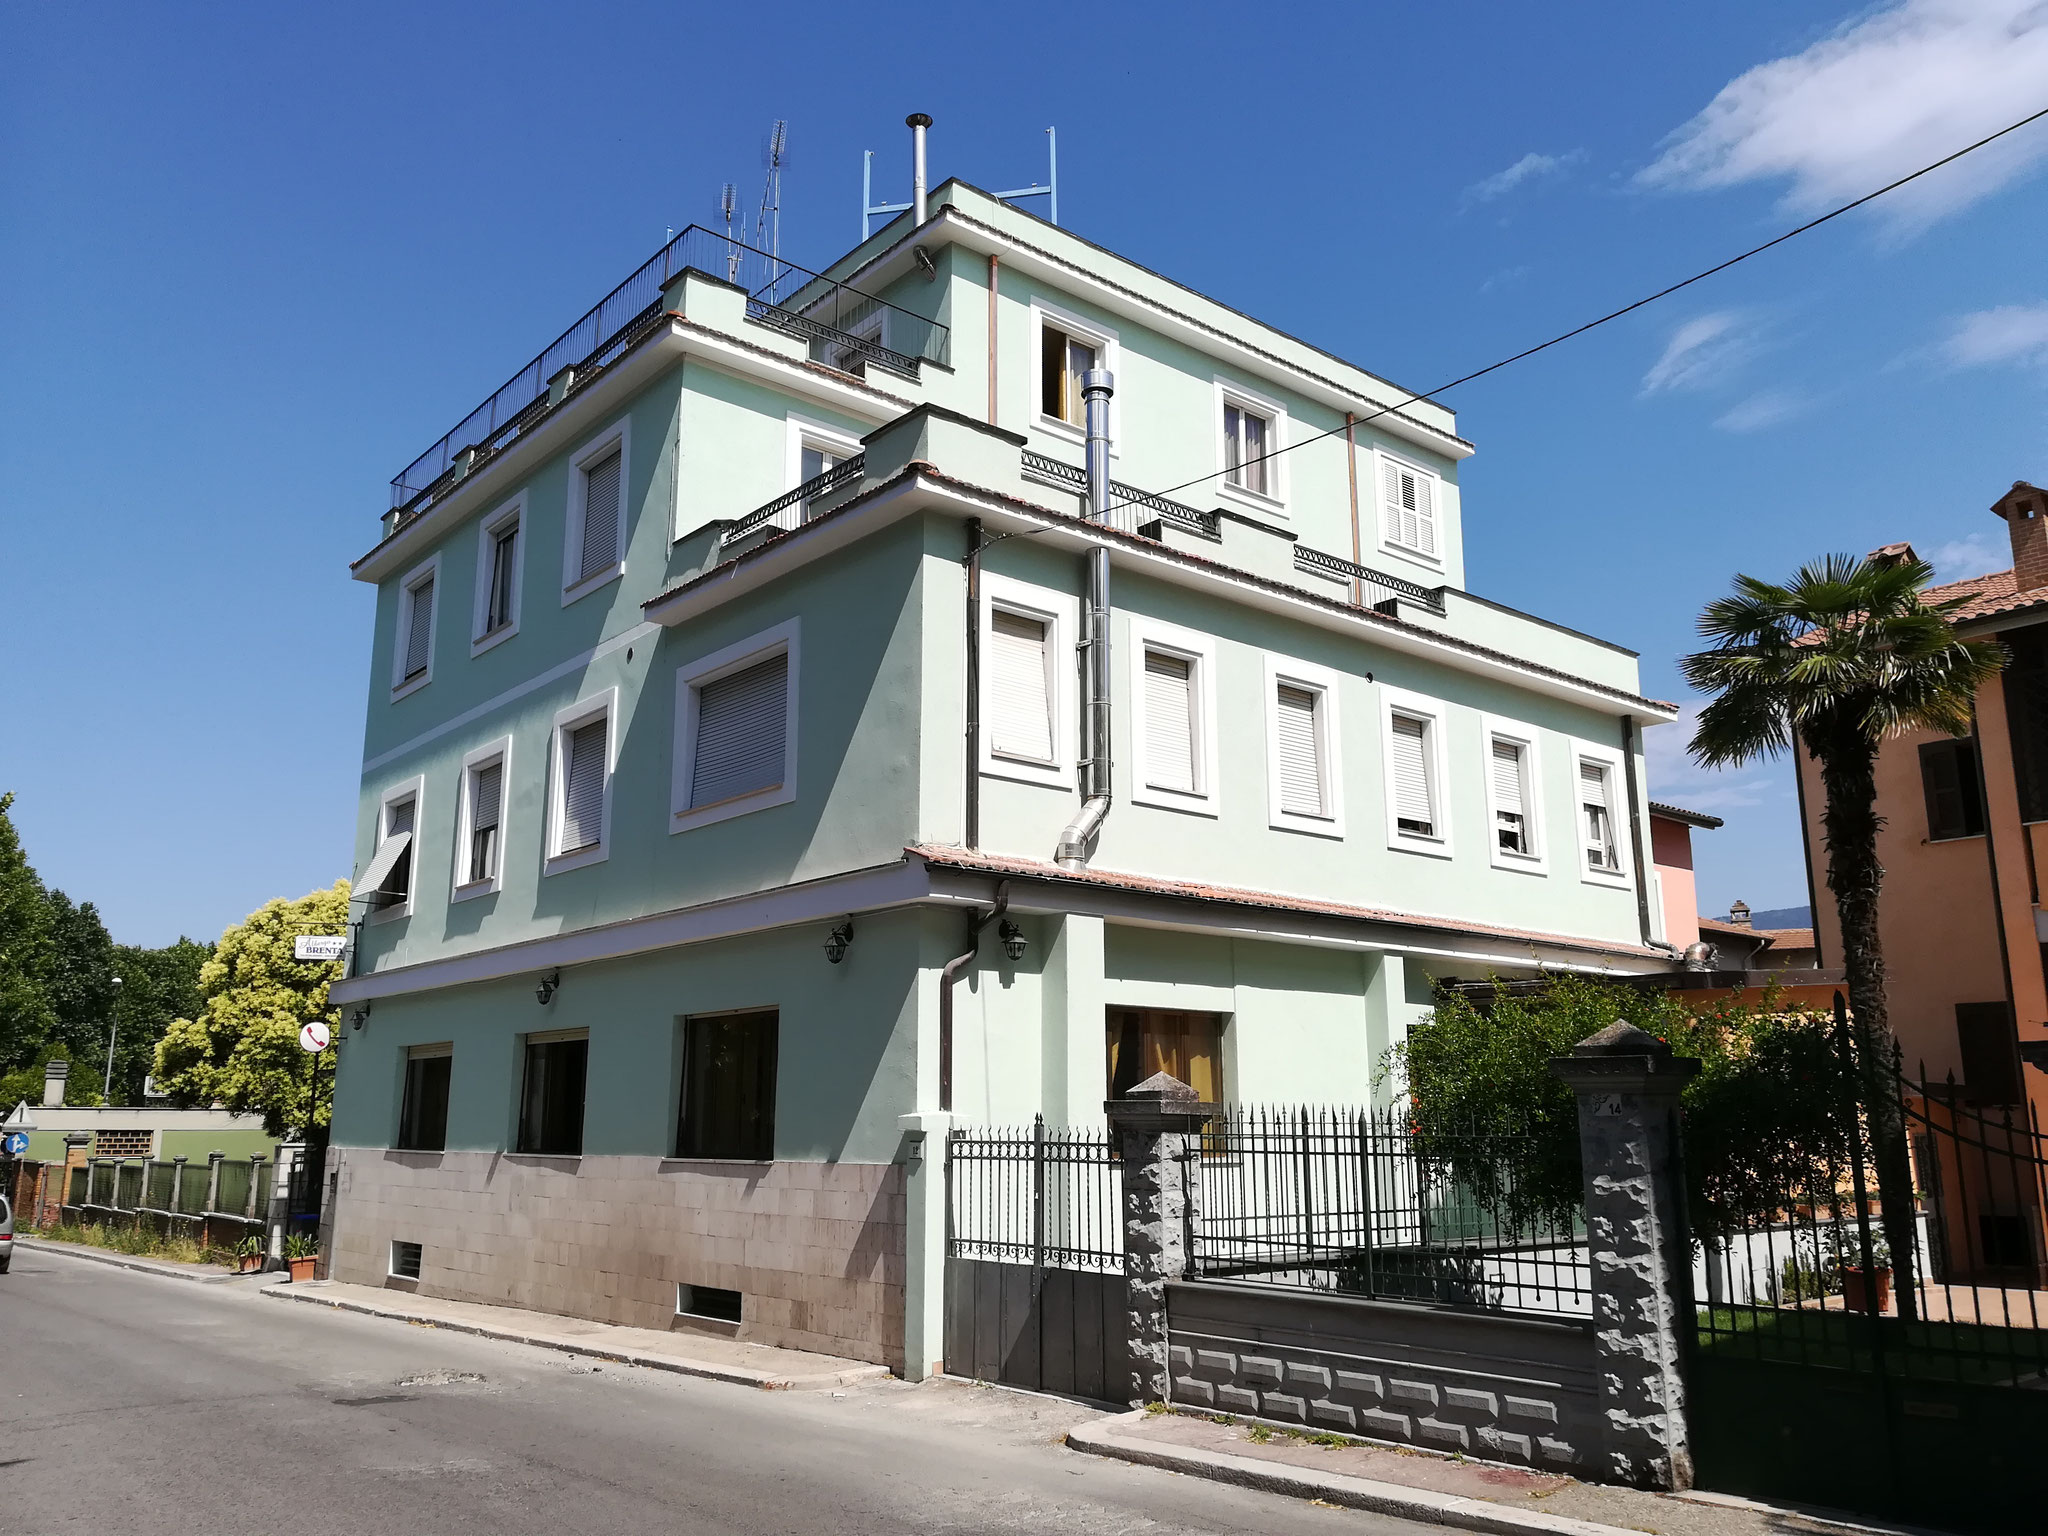 Hotel economico a Terni due stelle - Albergo Brenta bed and ...